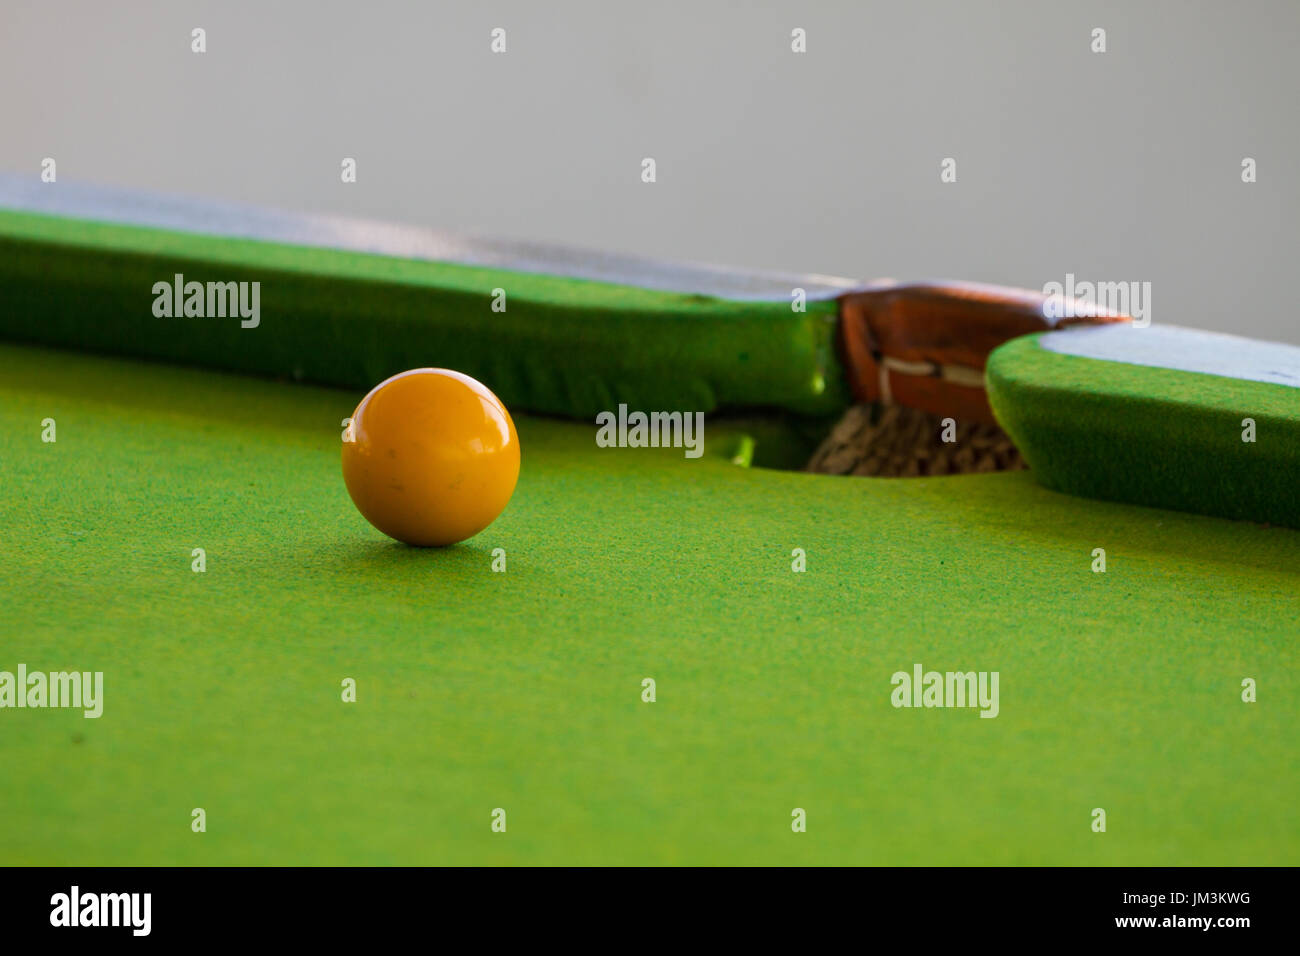 how to set up billiards